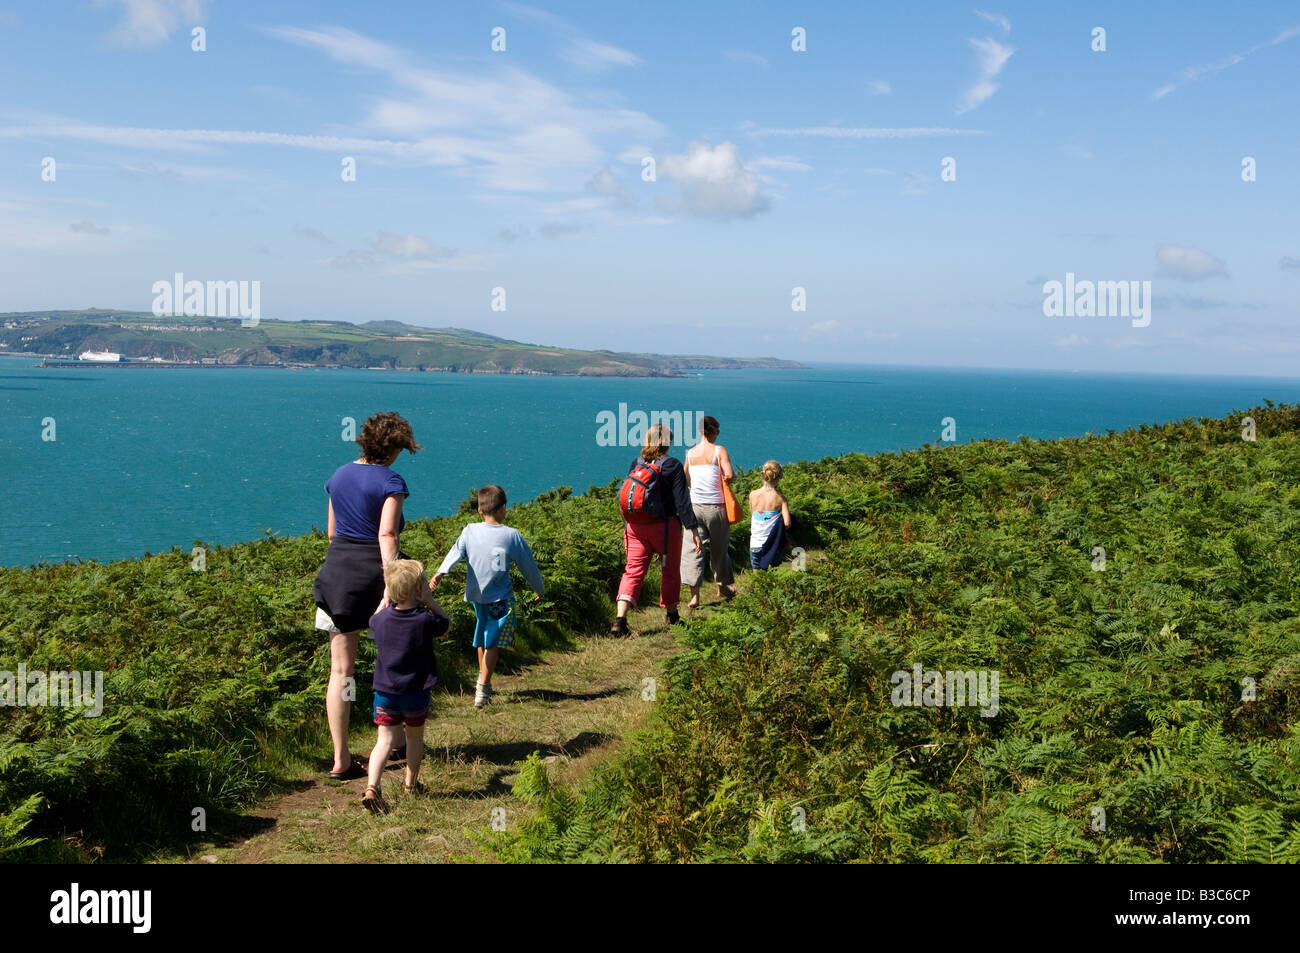 UK, Wales, Pembrokeshire. A family walks along the Pembrokeshire Coastal Path around Dinas Head with views of Fishguard - Stock Image